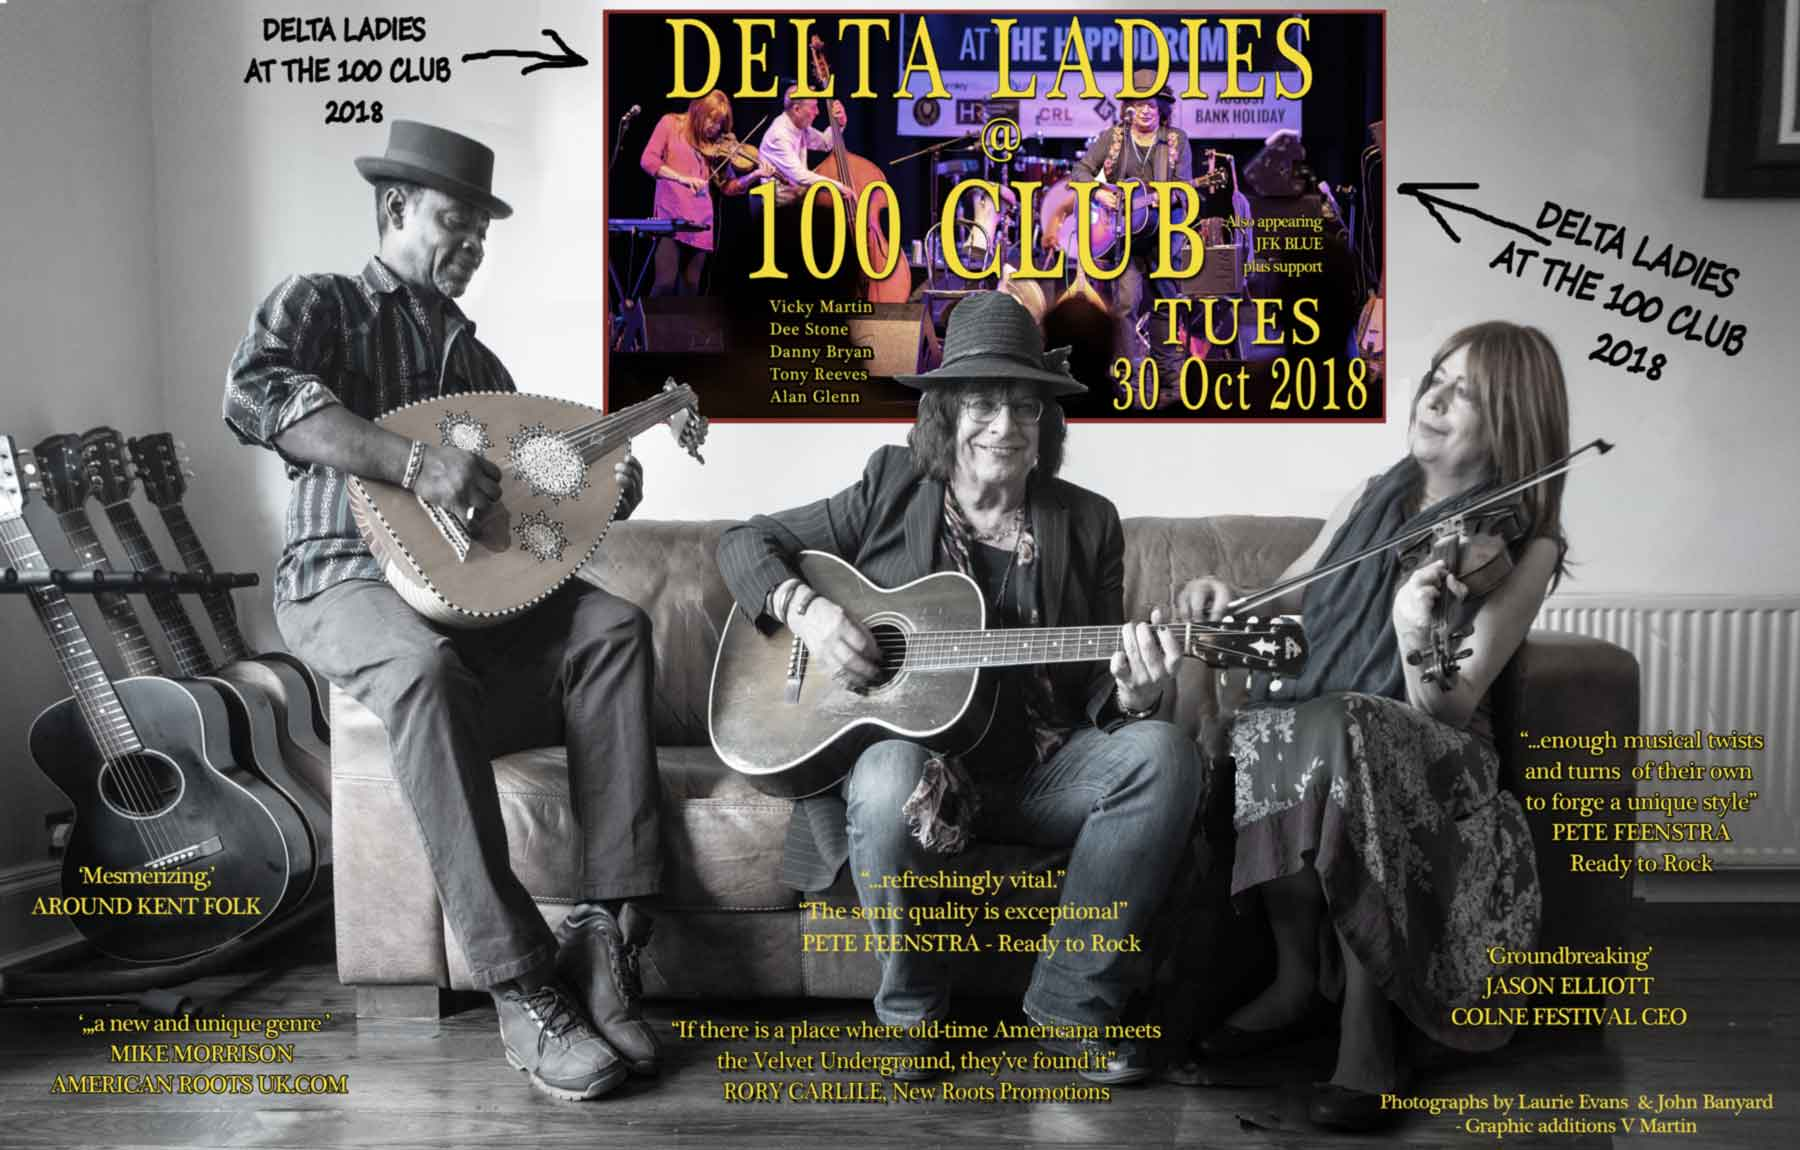 100 Club Tickets and Booking information. Click here to book tickets